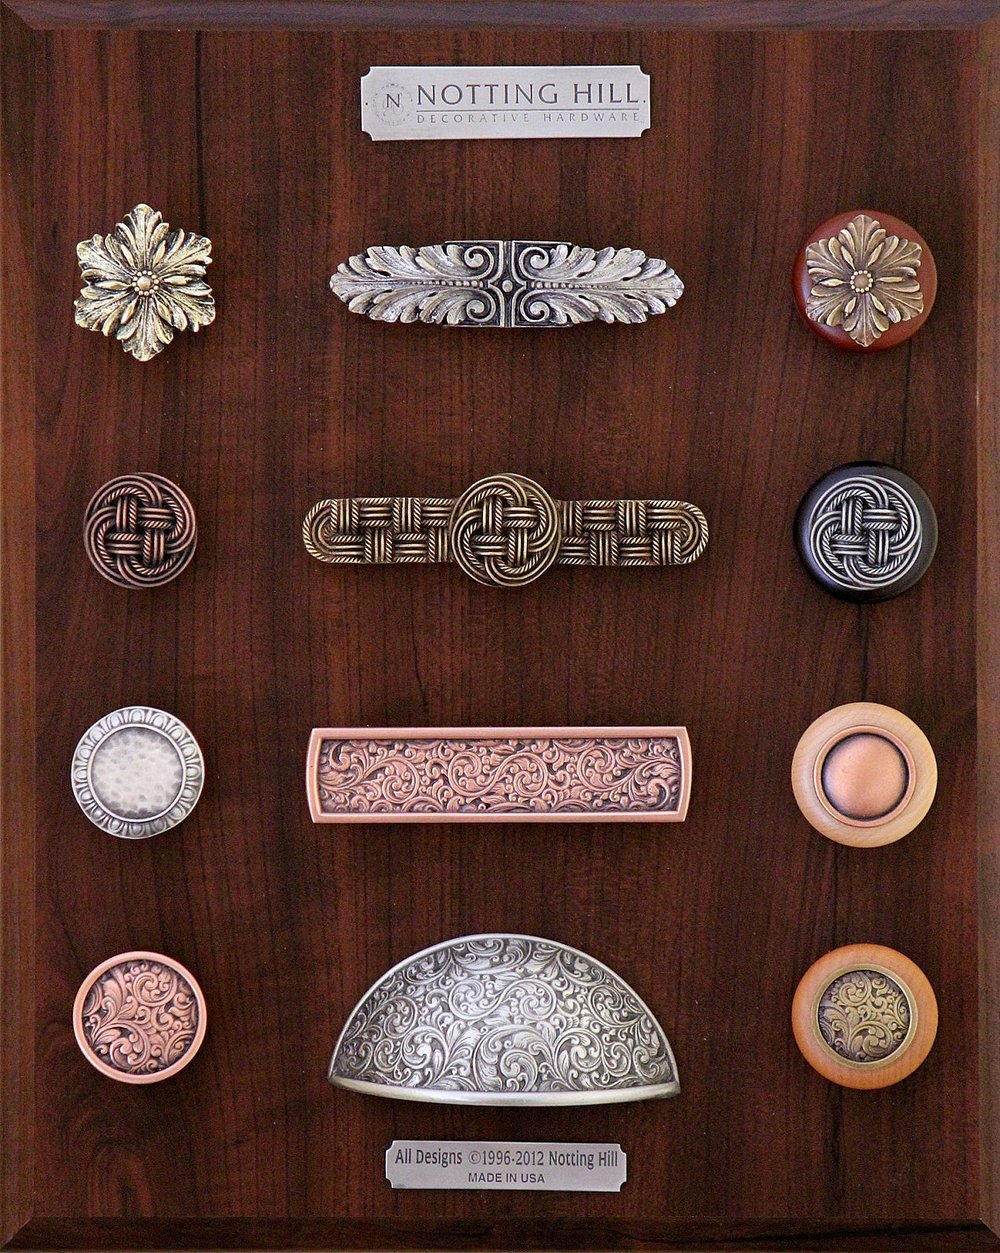 Opulent Flower Knob, Pull, & Wood Knob; Classic Weave Knob, Pull & Wood Knobs; Egg & Dart Knob; Saddleworth Pull; Plain Dome Wood Knob; Saddleworth Knob, Bin Pull & Wood Knob.